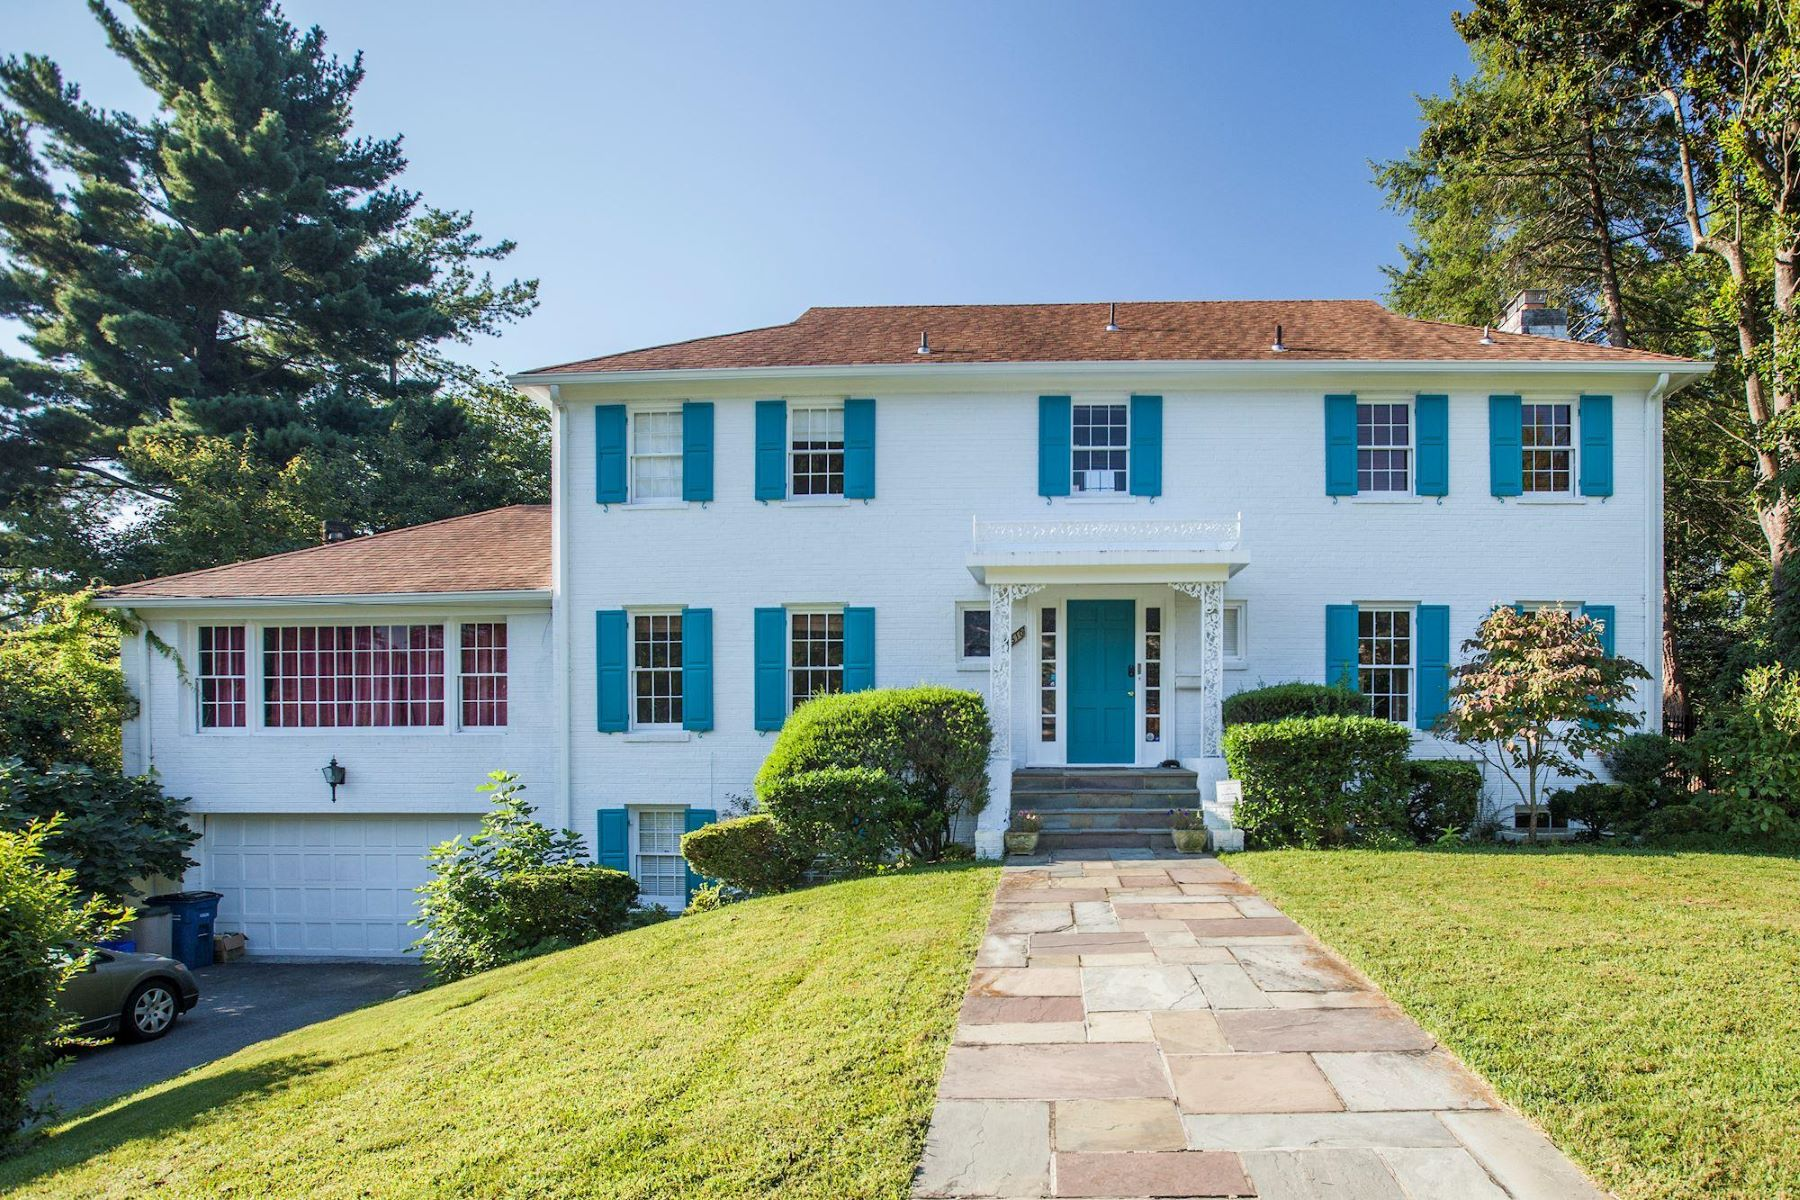 Single Family Home for Rent at 5510 Pembroke Rd 5510 Pembroke Rd Bethesda, Maryland 20817 United States